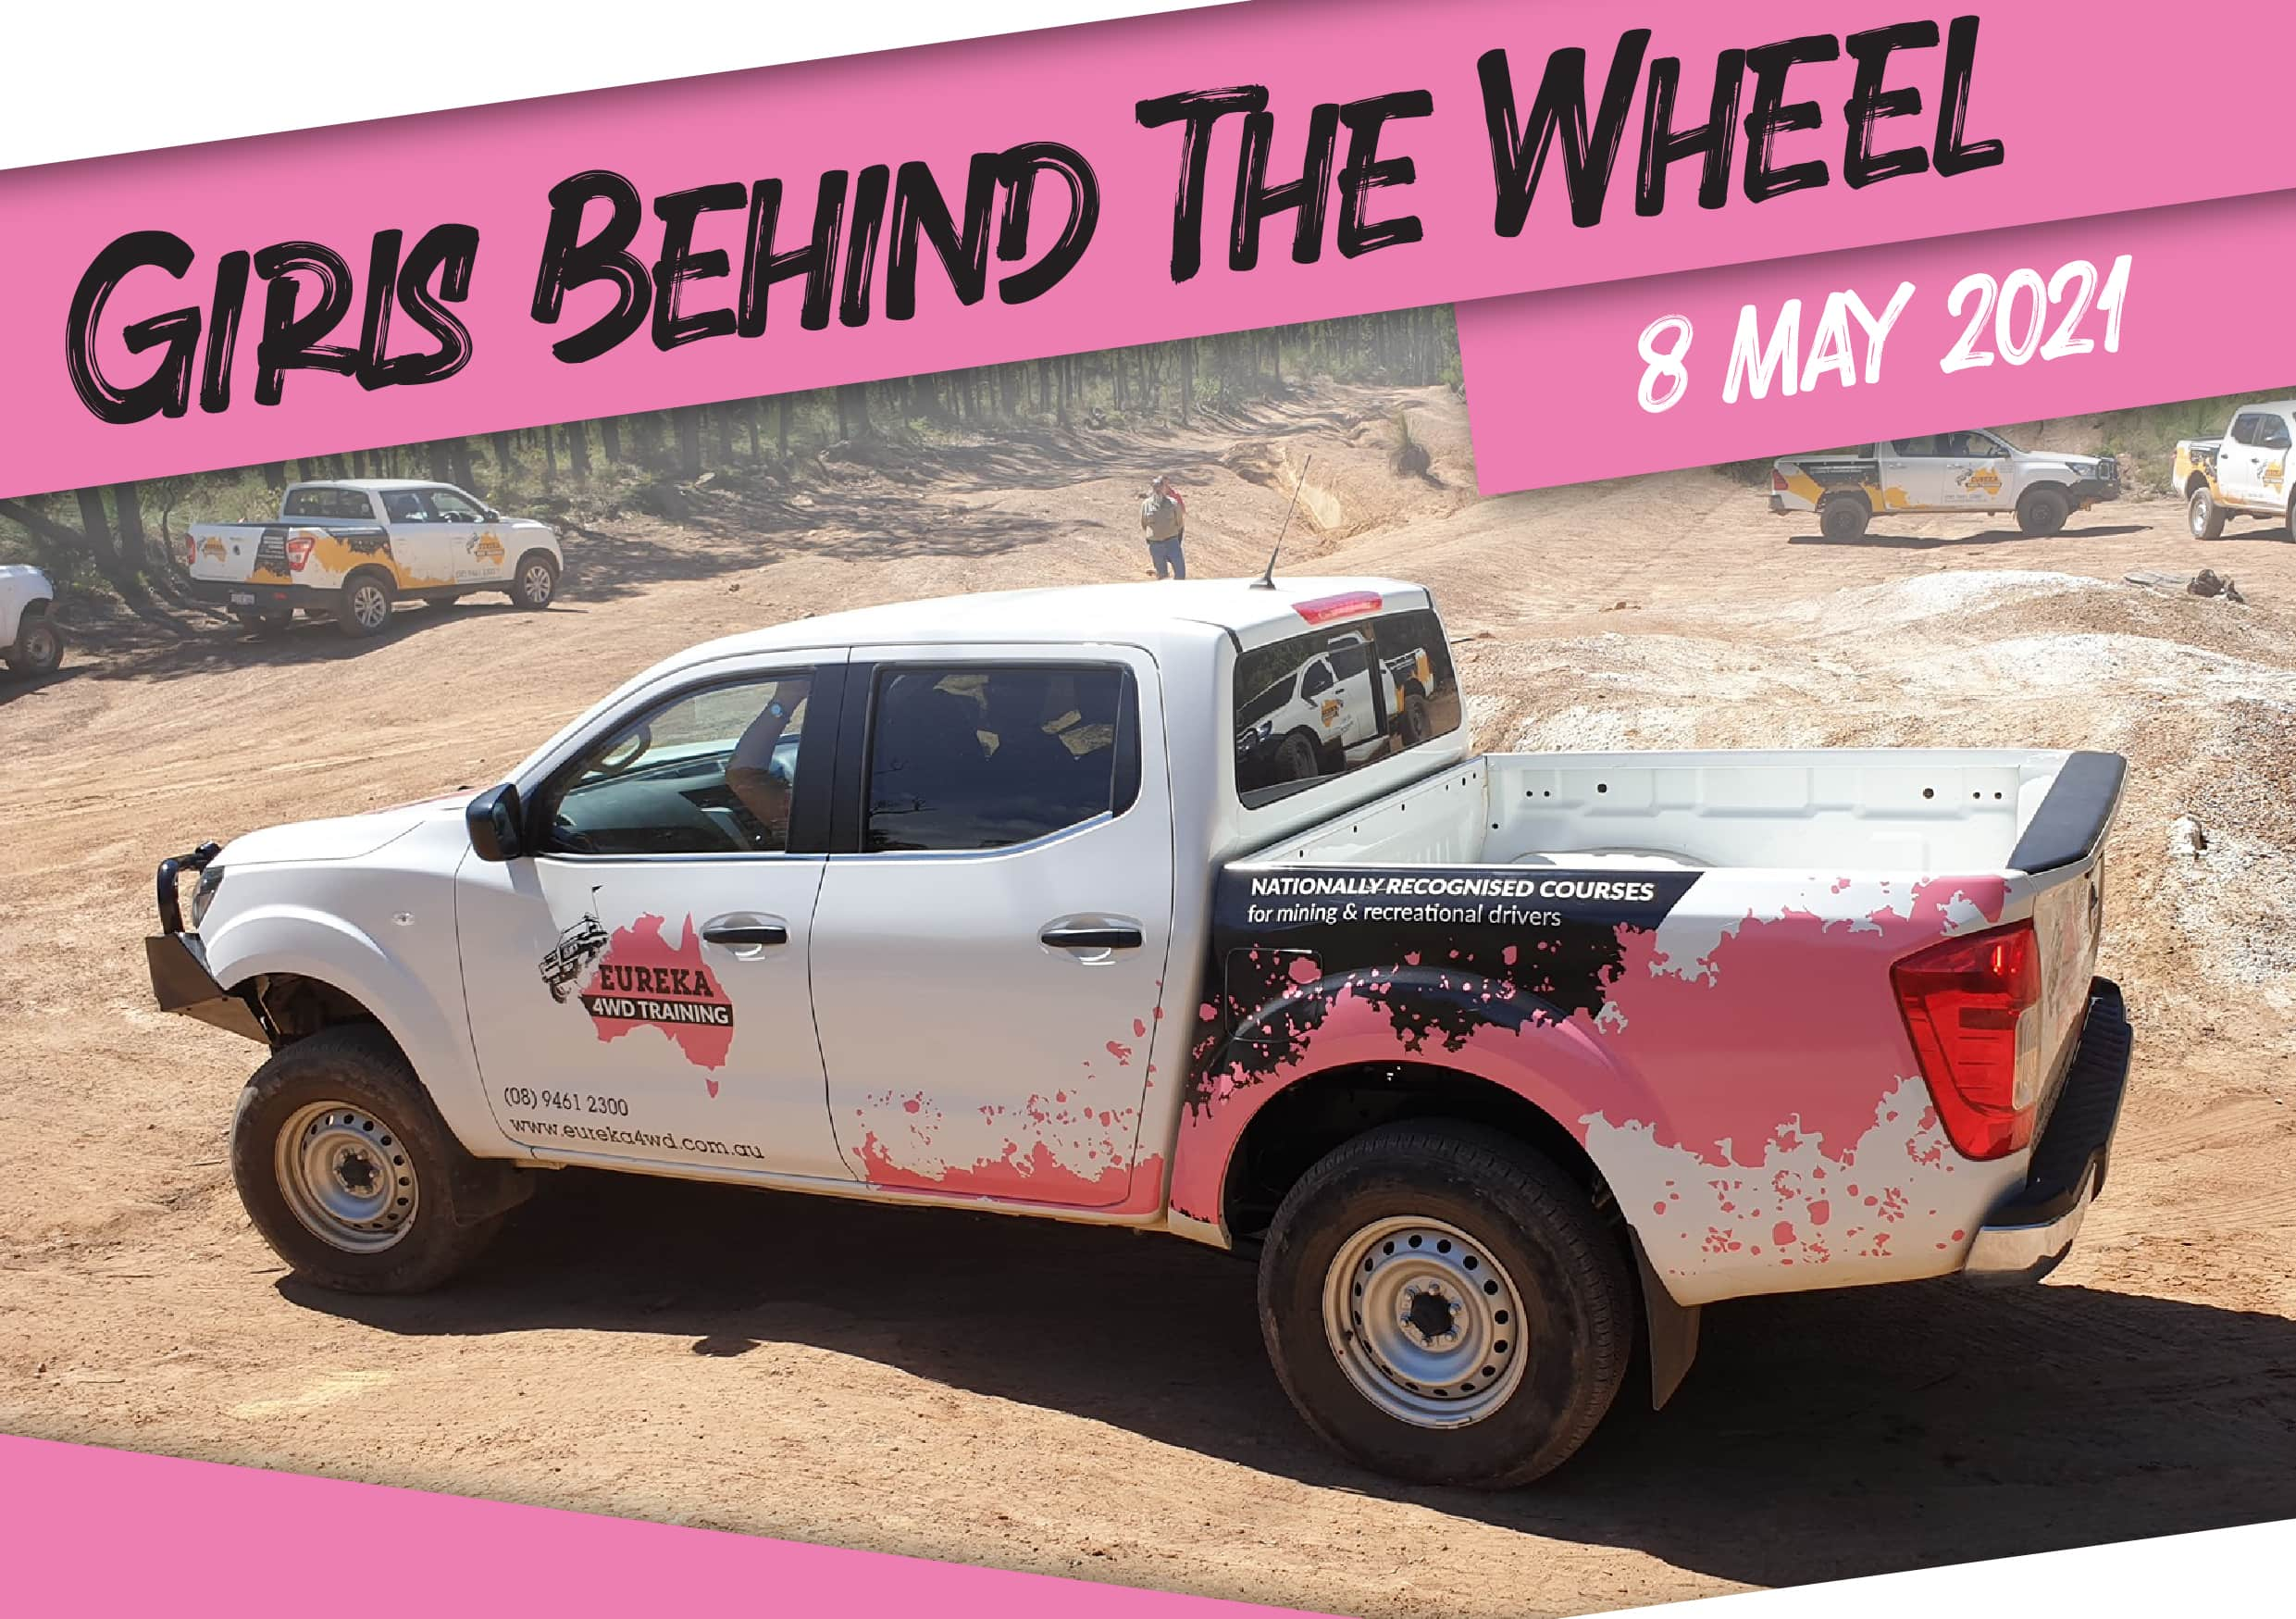 Girls Behind the Wheel – 4WD Course